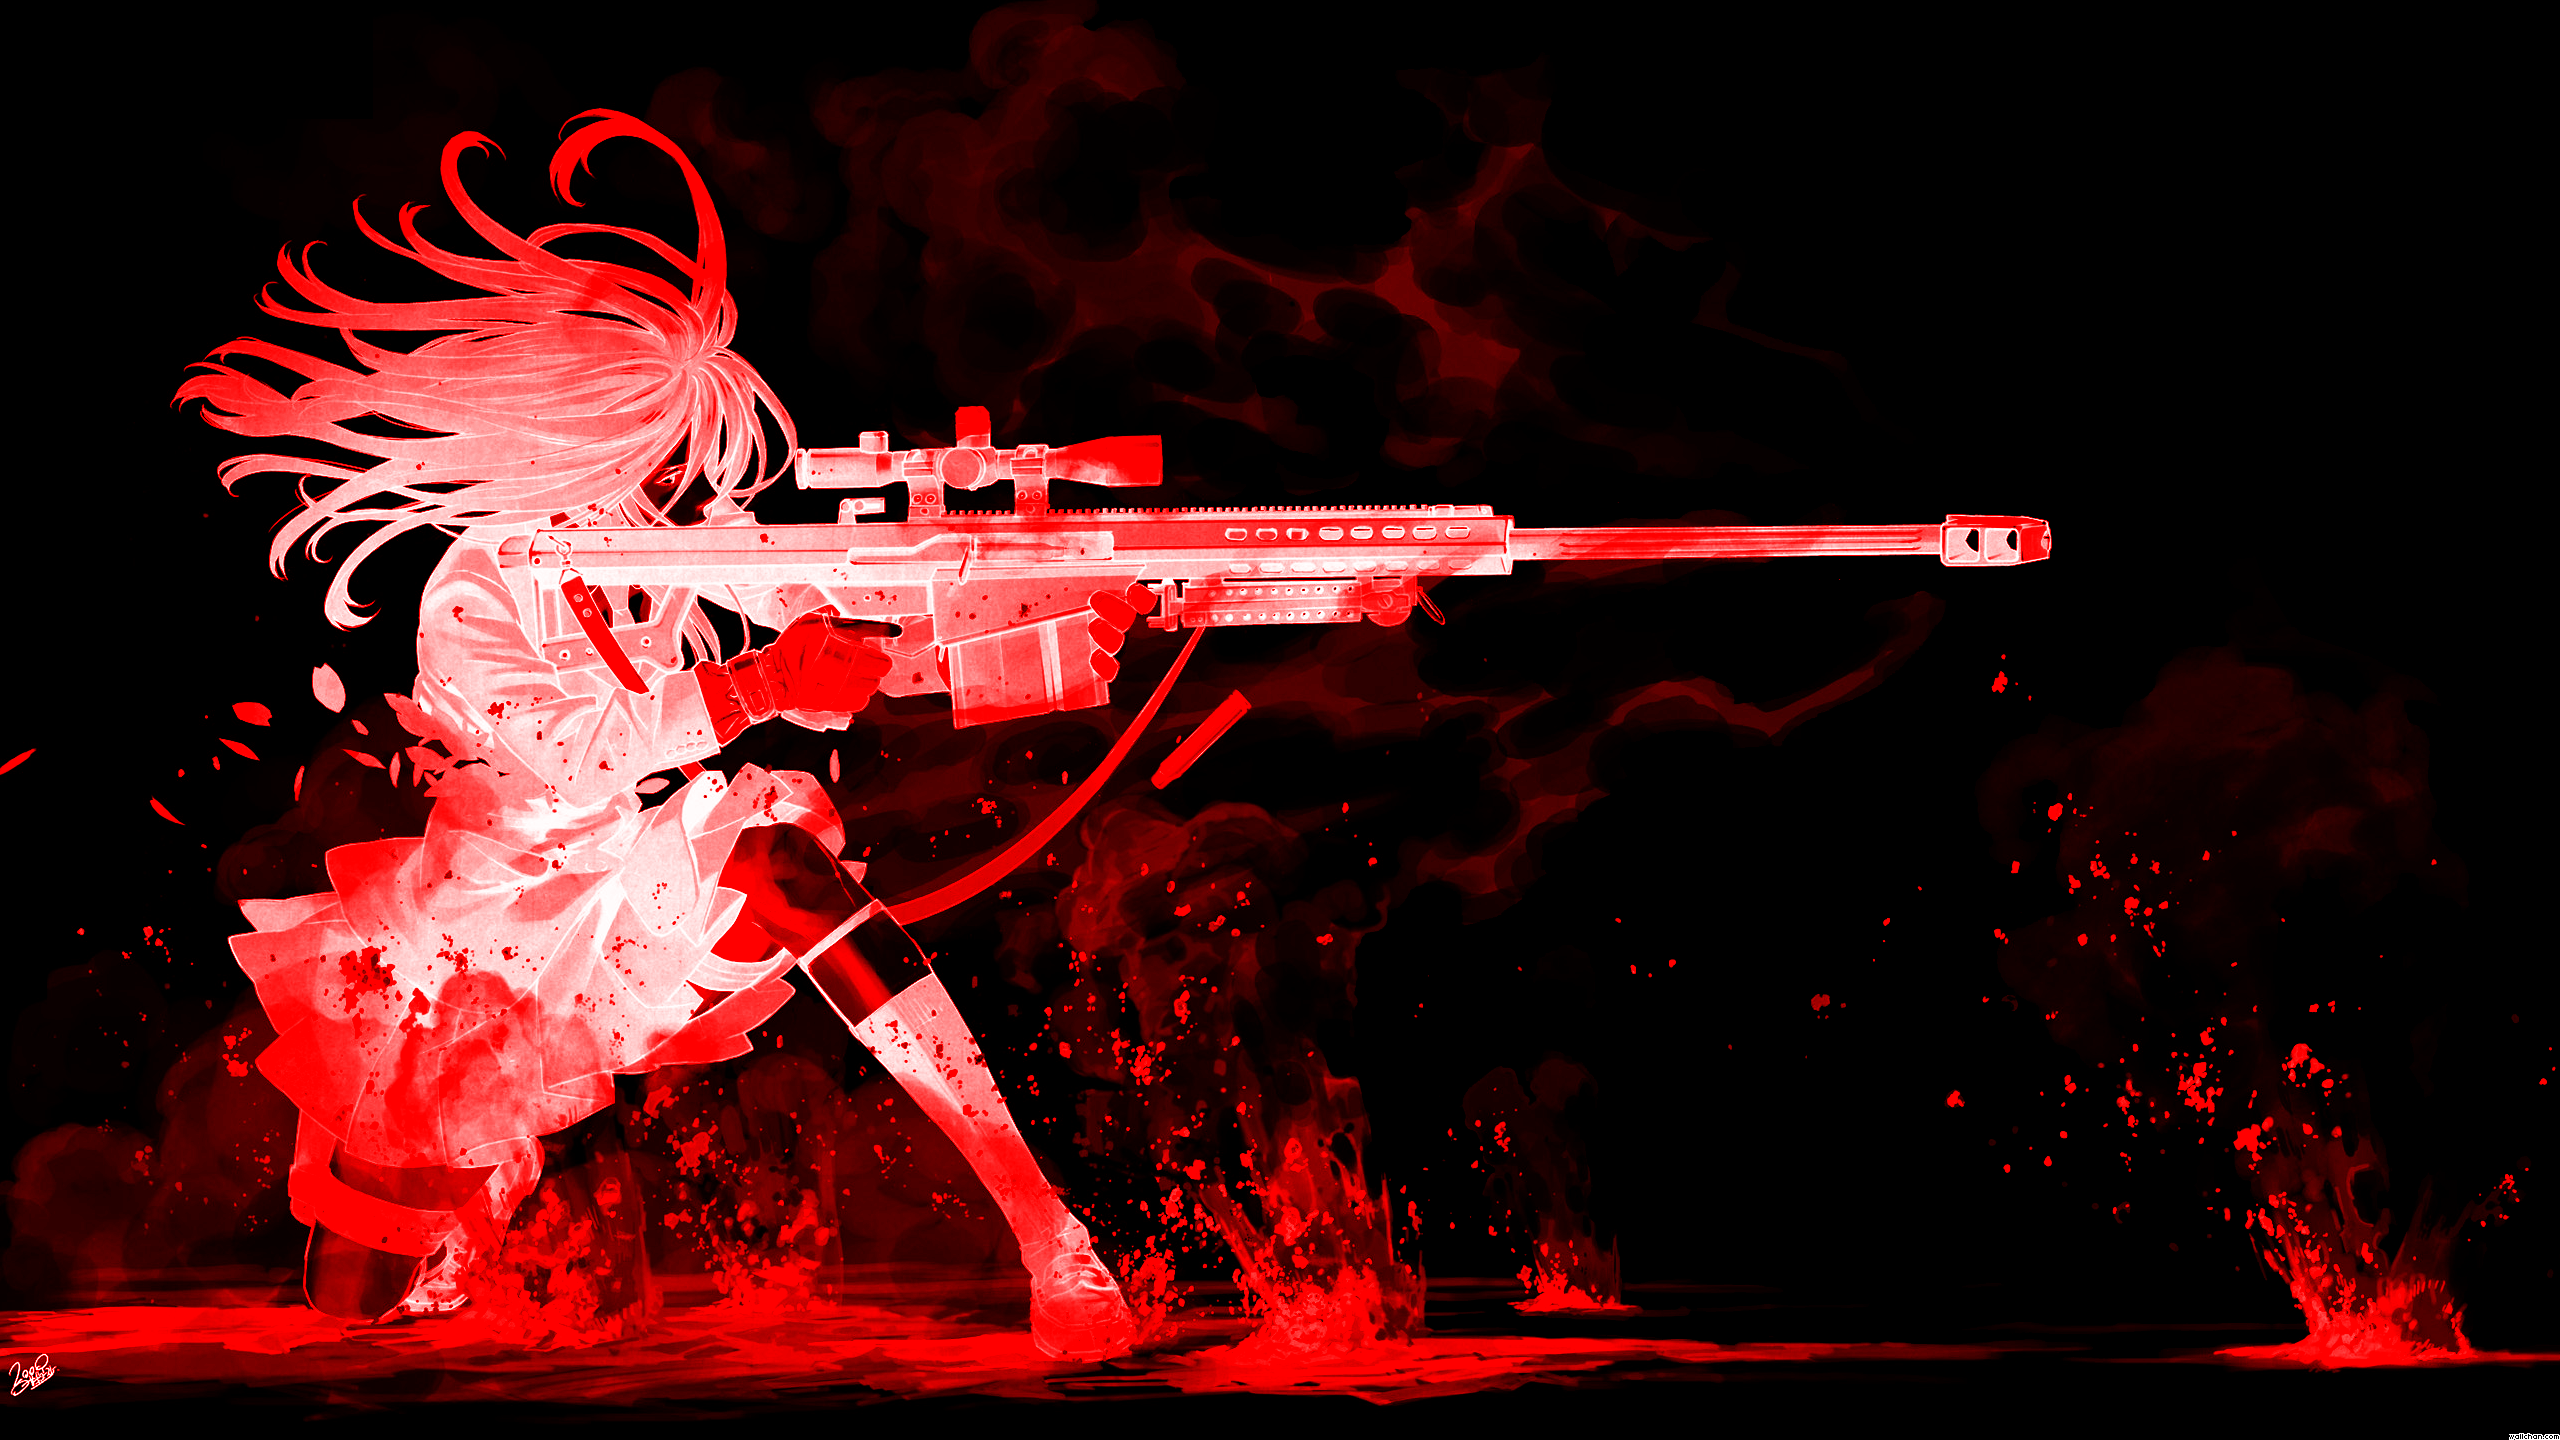 orgwallpapers0774snipers anime 2560x1440 wallpaper 2190142png 2560x1440